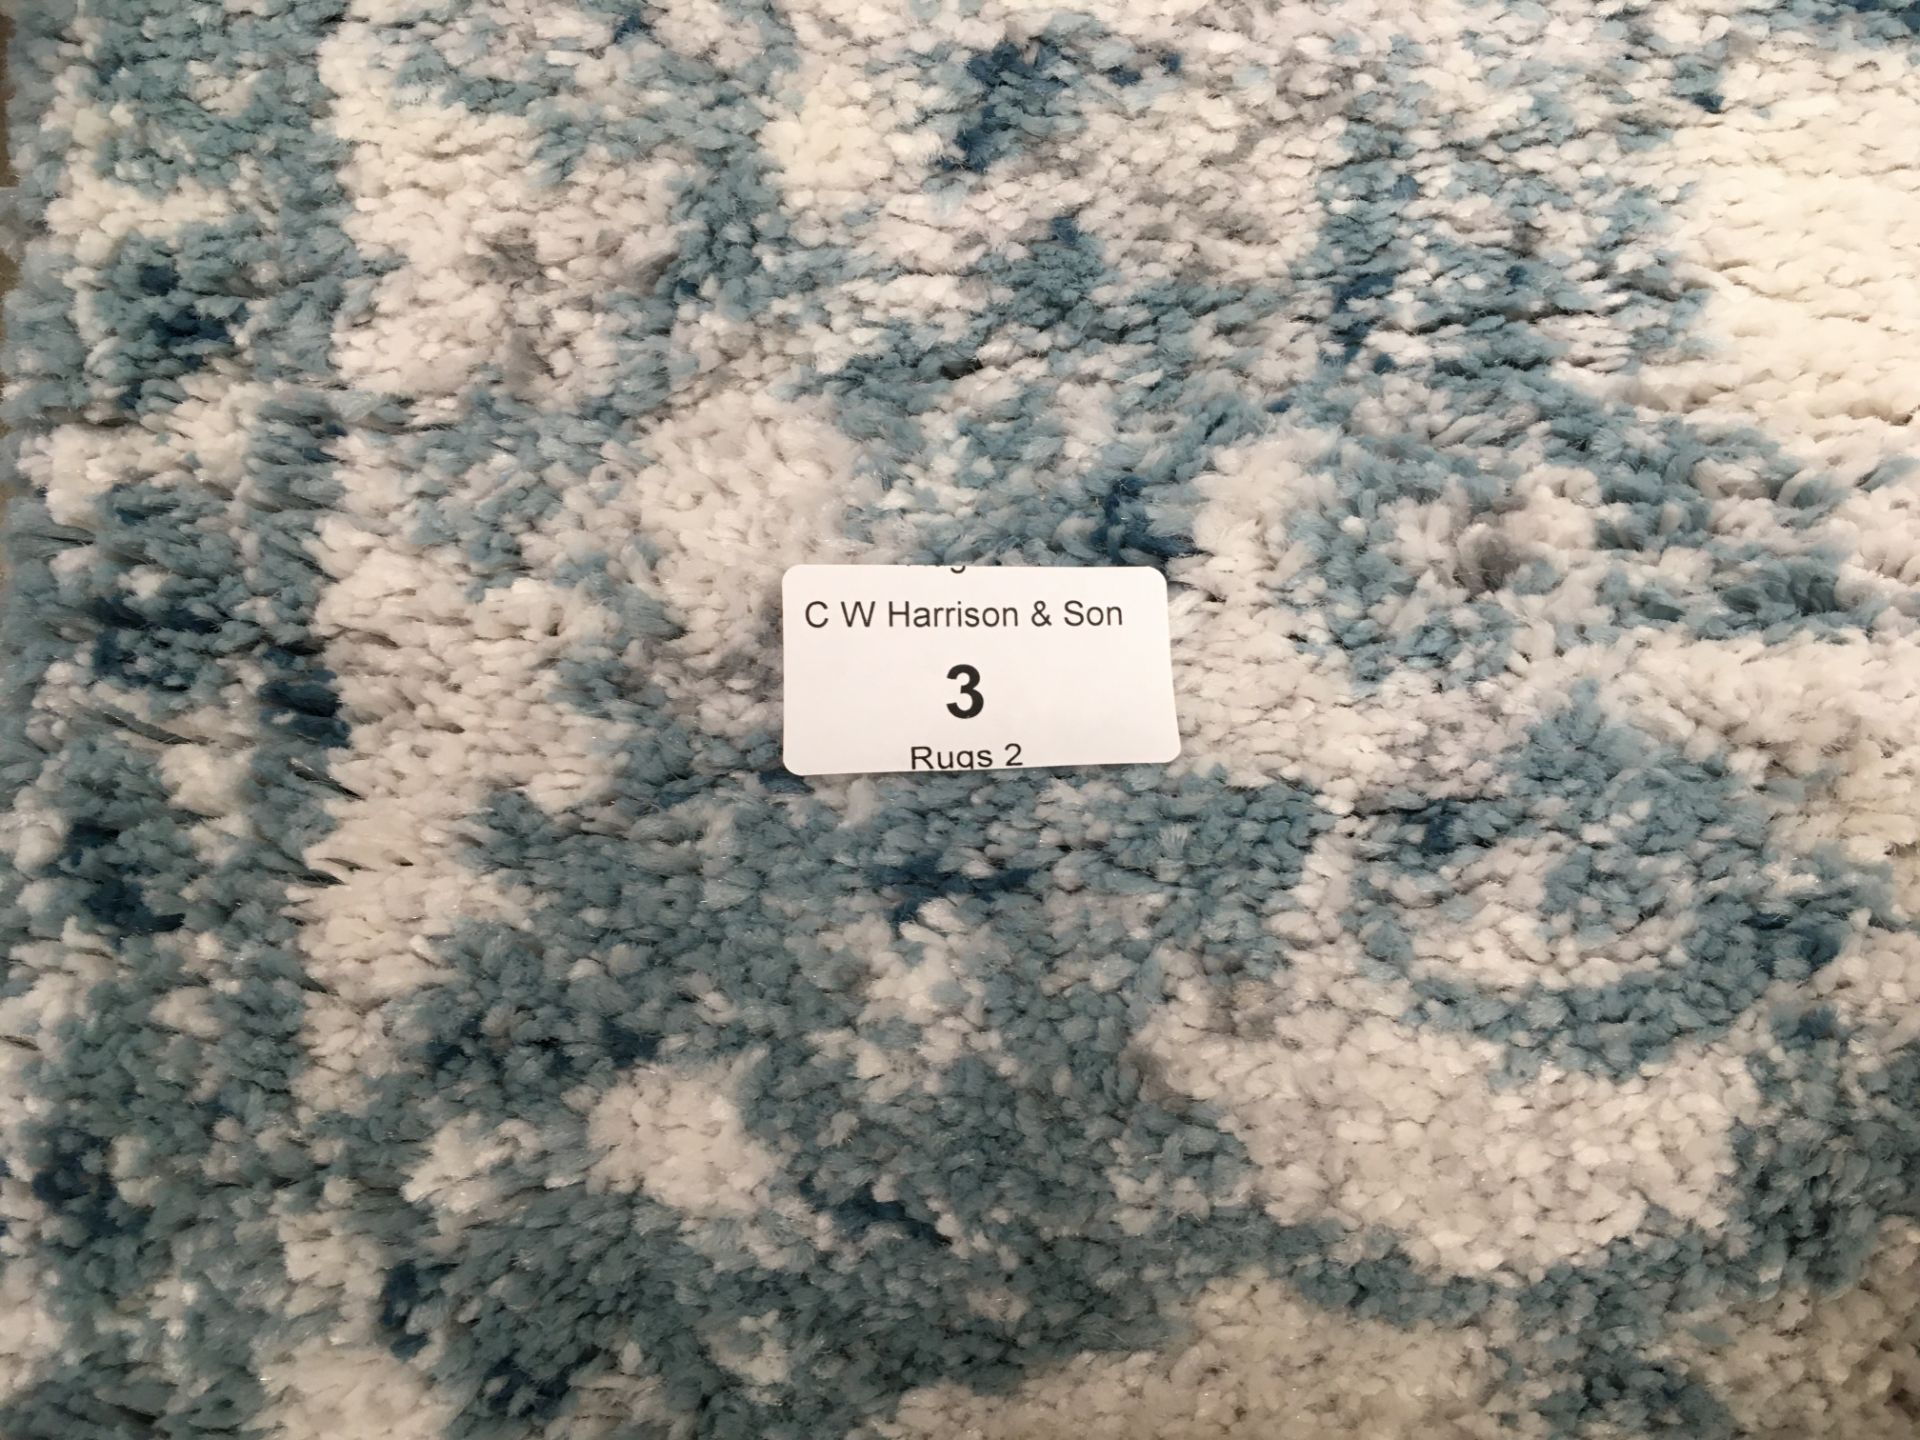 Lot 3 - A white and light blue patterned rug - 170cm x 120cm